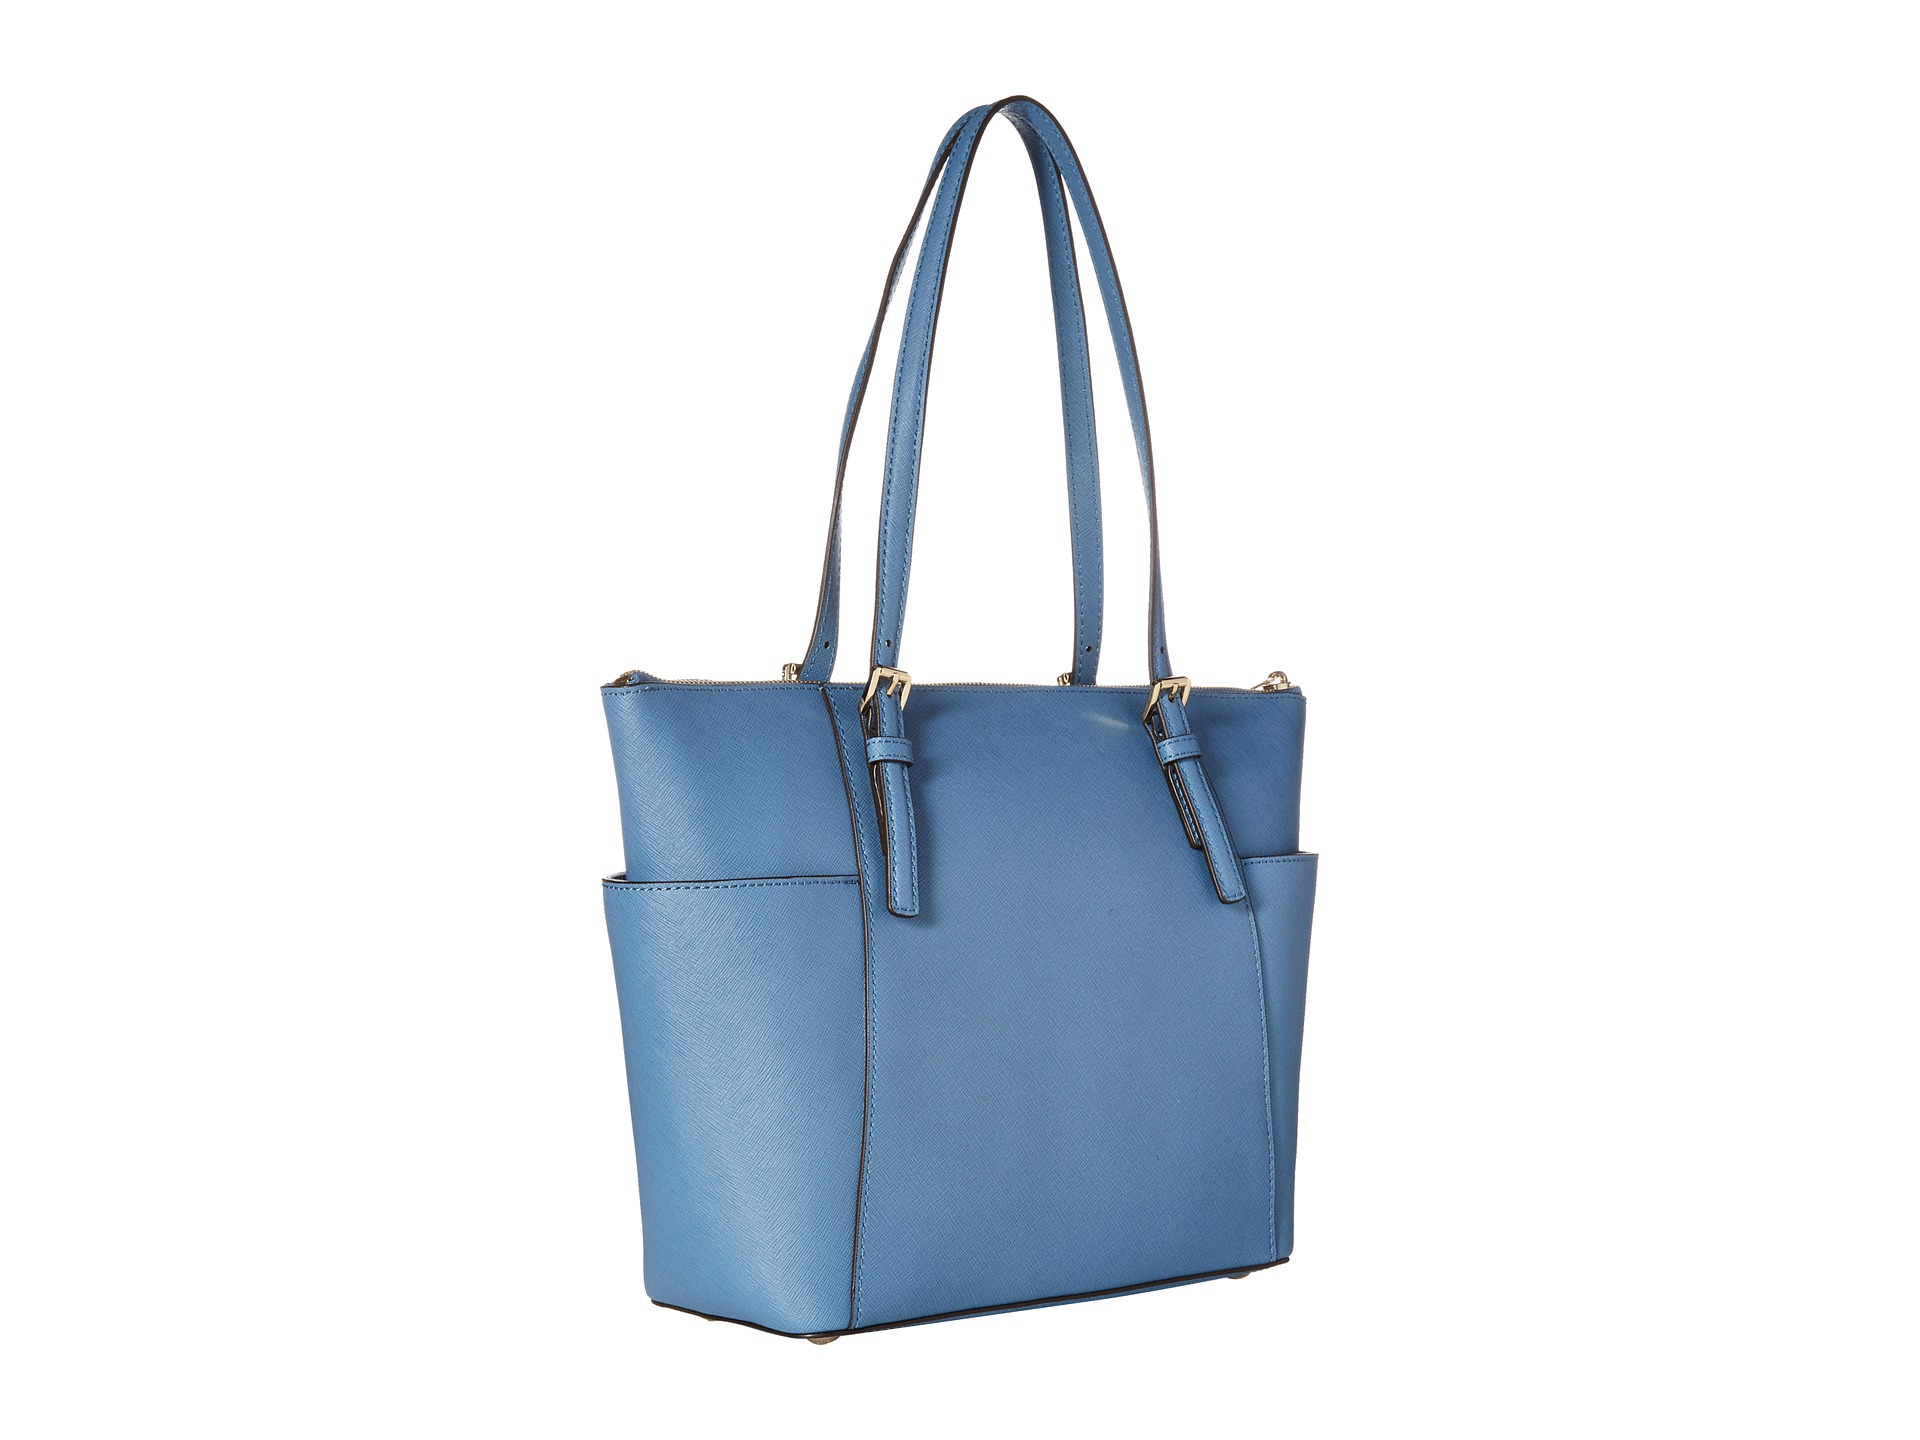 dfde84ee71c5 MICHAEL Michael Kors Jet Set Saffiano Top Zip Tote in Blue - Lyst